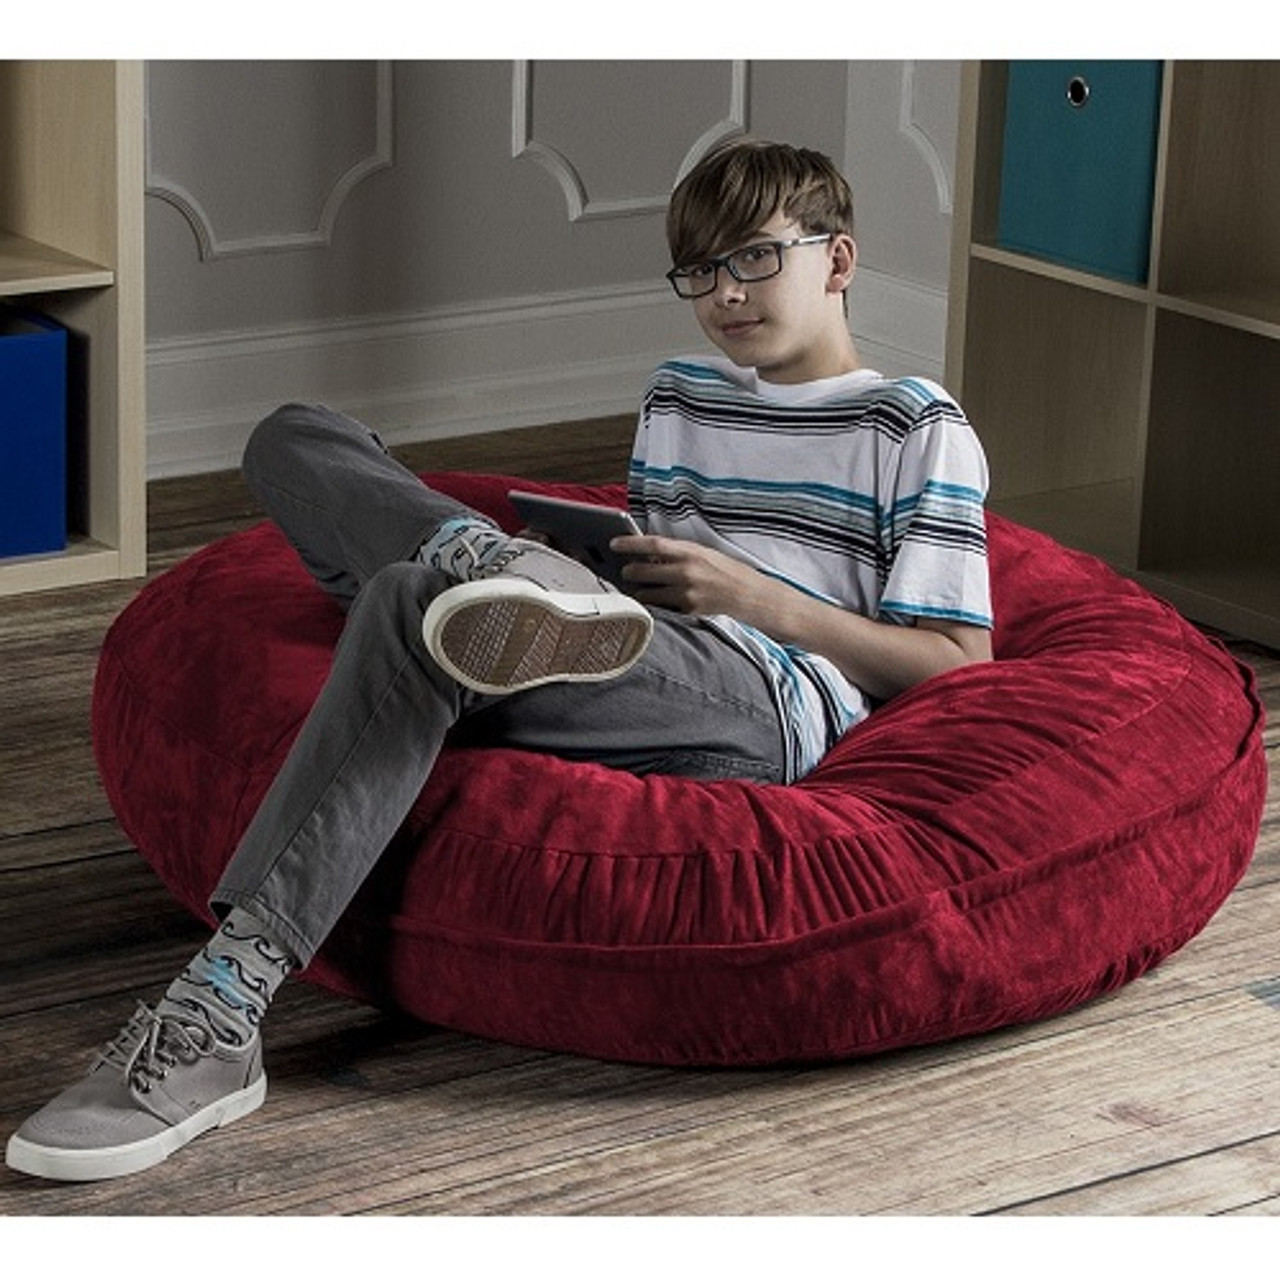 Bean Bag Chairs For Autism And Special Needs